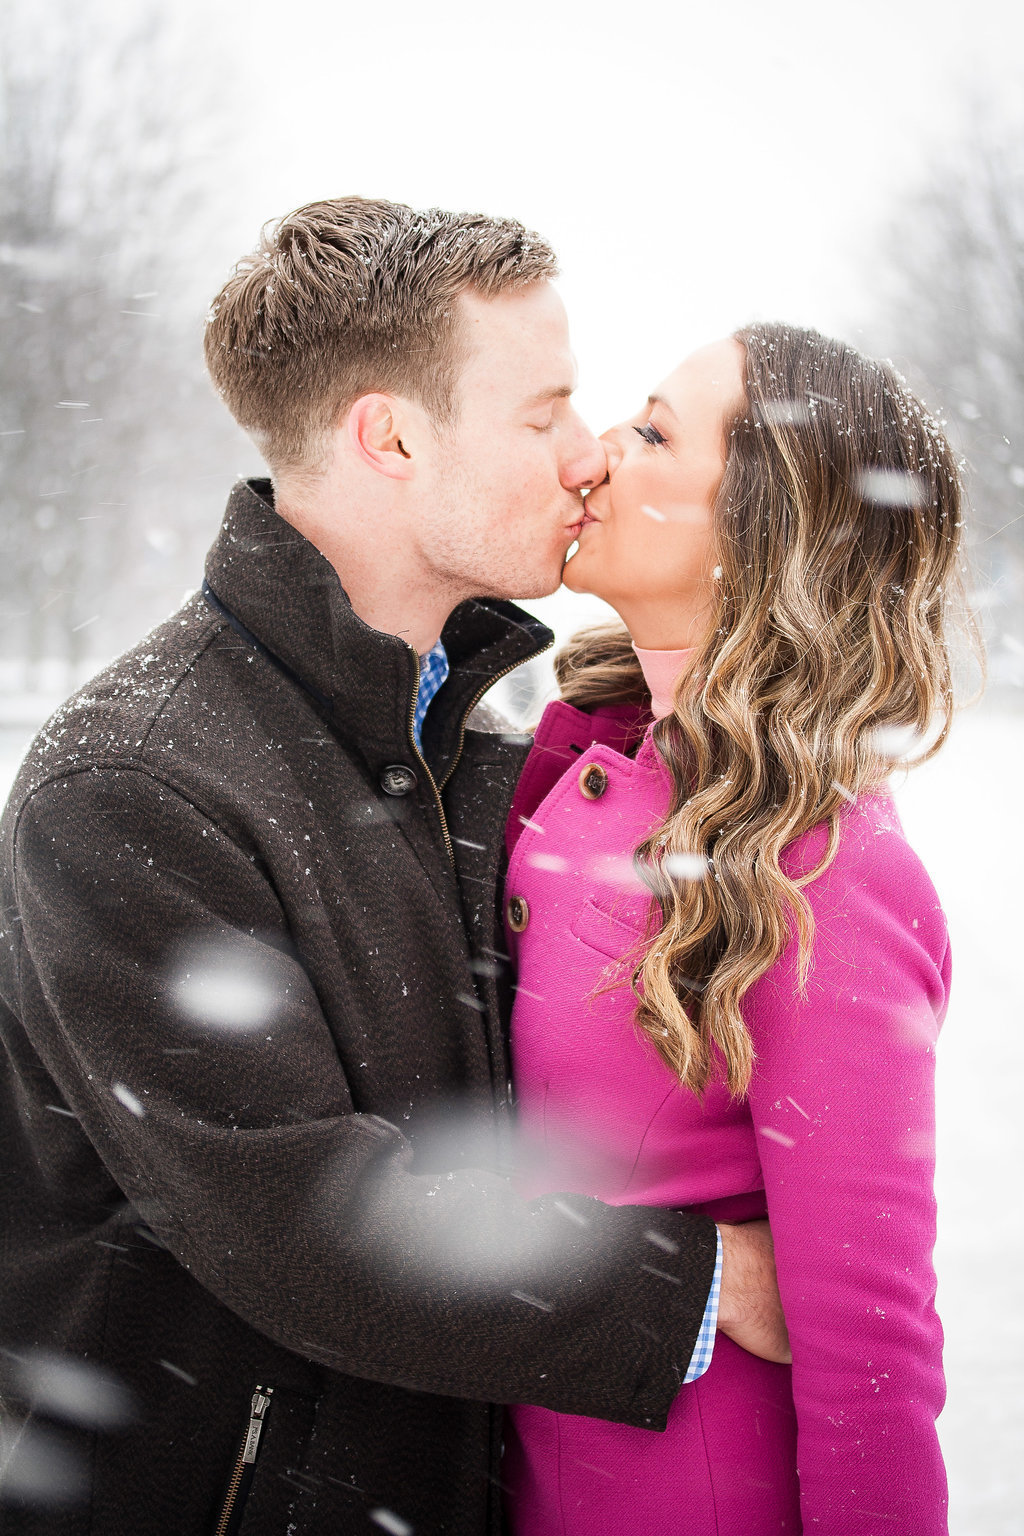 Millennium Park Chicago Illinois Winter Engagement Photographer Taylor Ingles 10